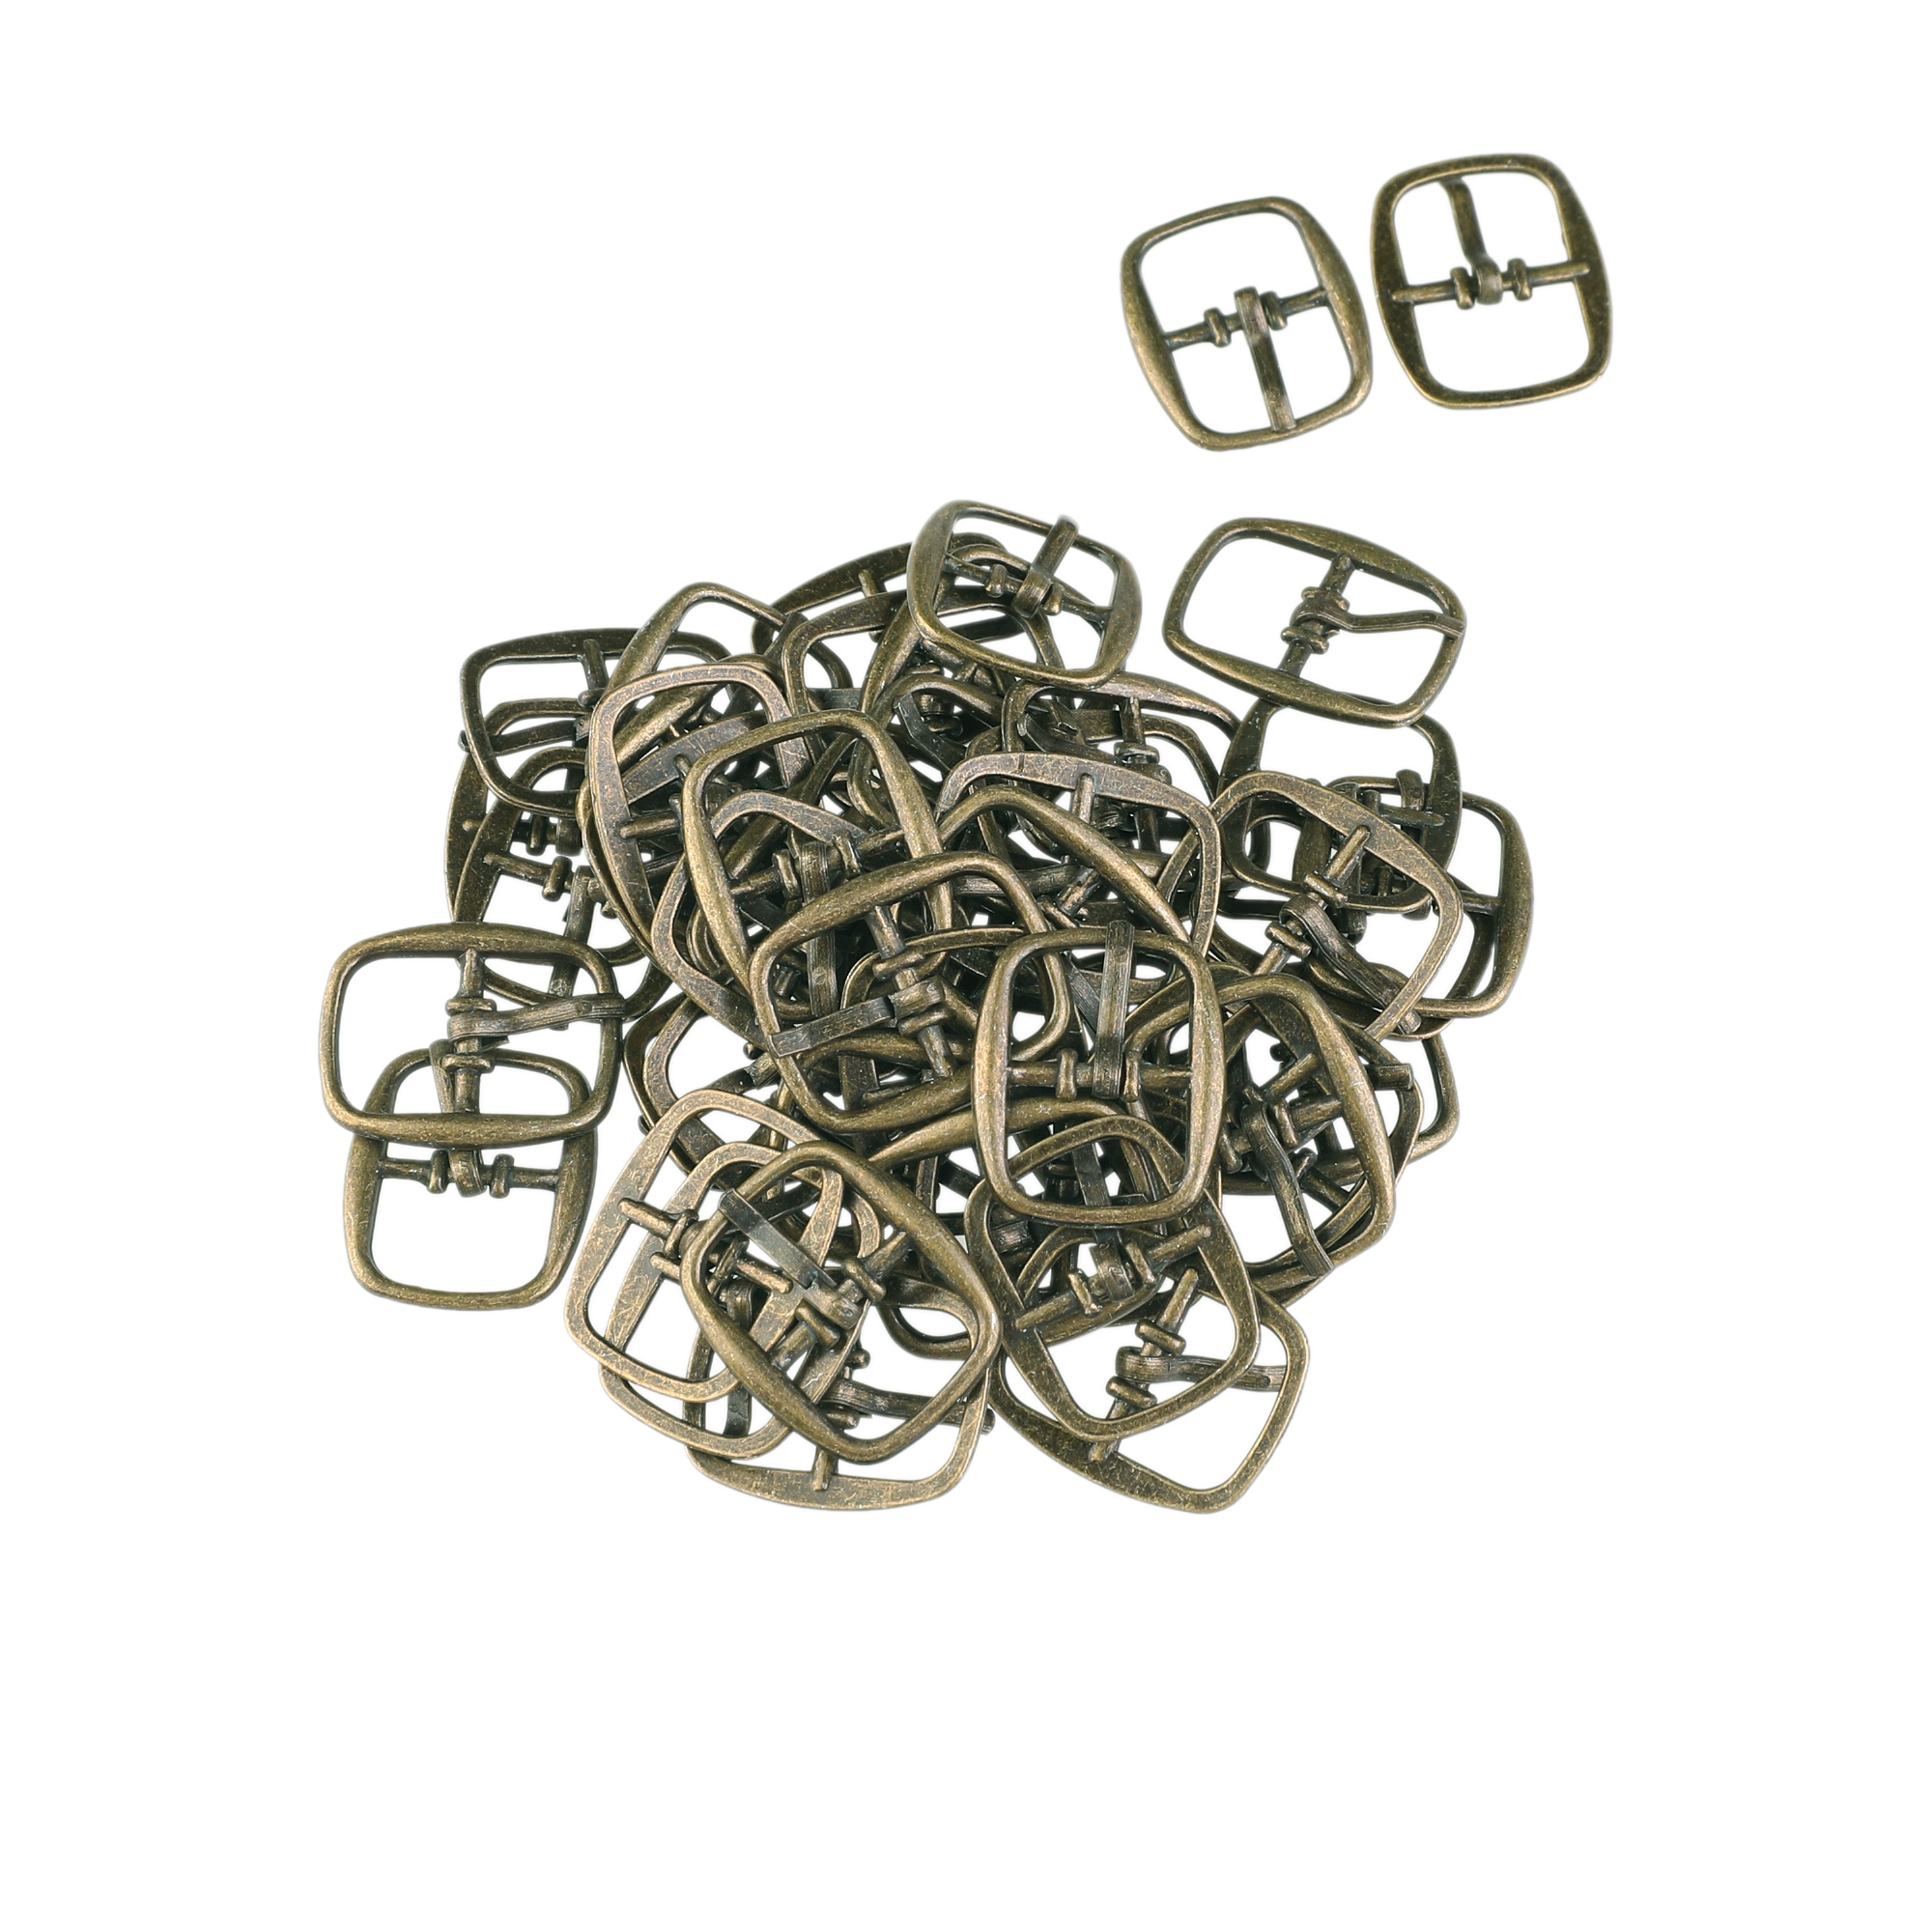 50 Pcs Rectangular Design Metallic Single Prong Pin Shoes Center Buckles Bronze Tone